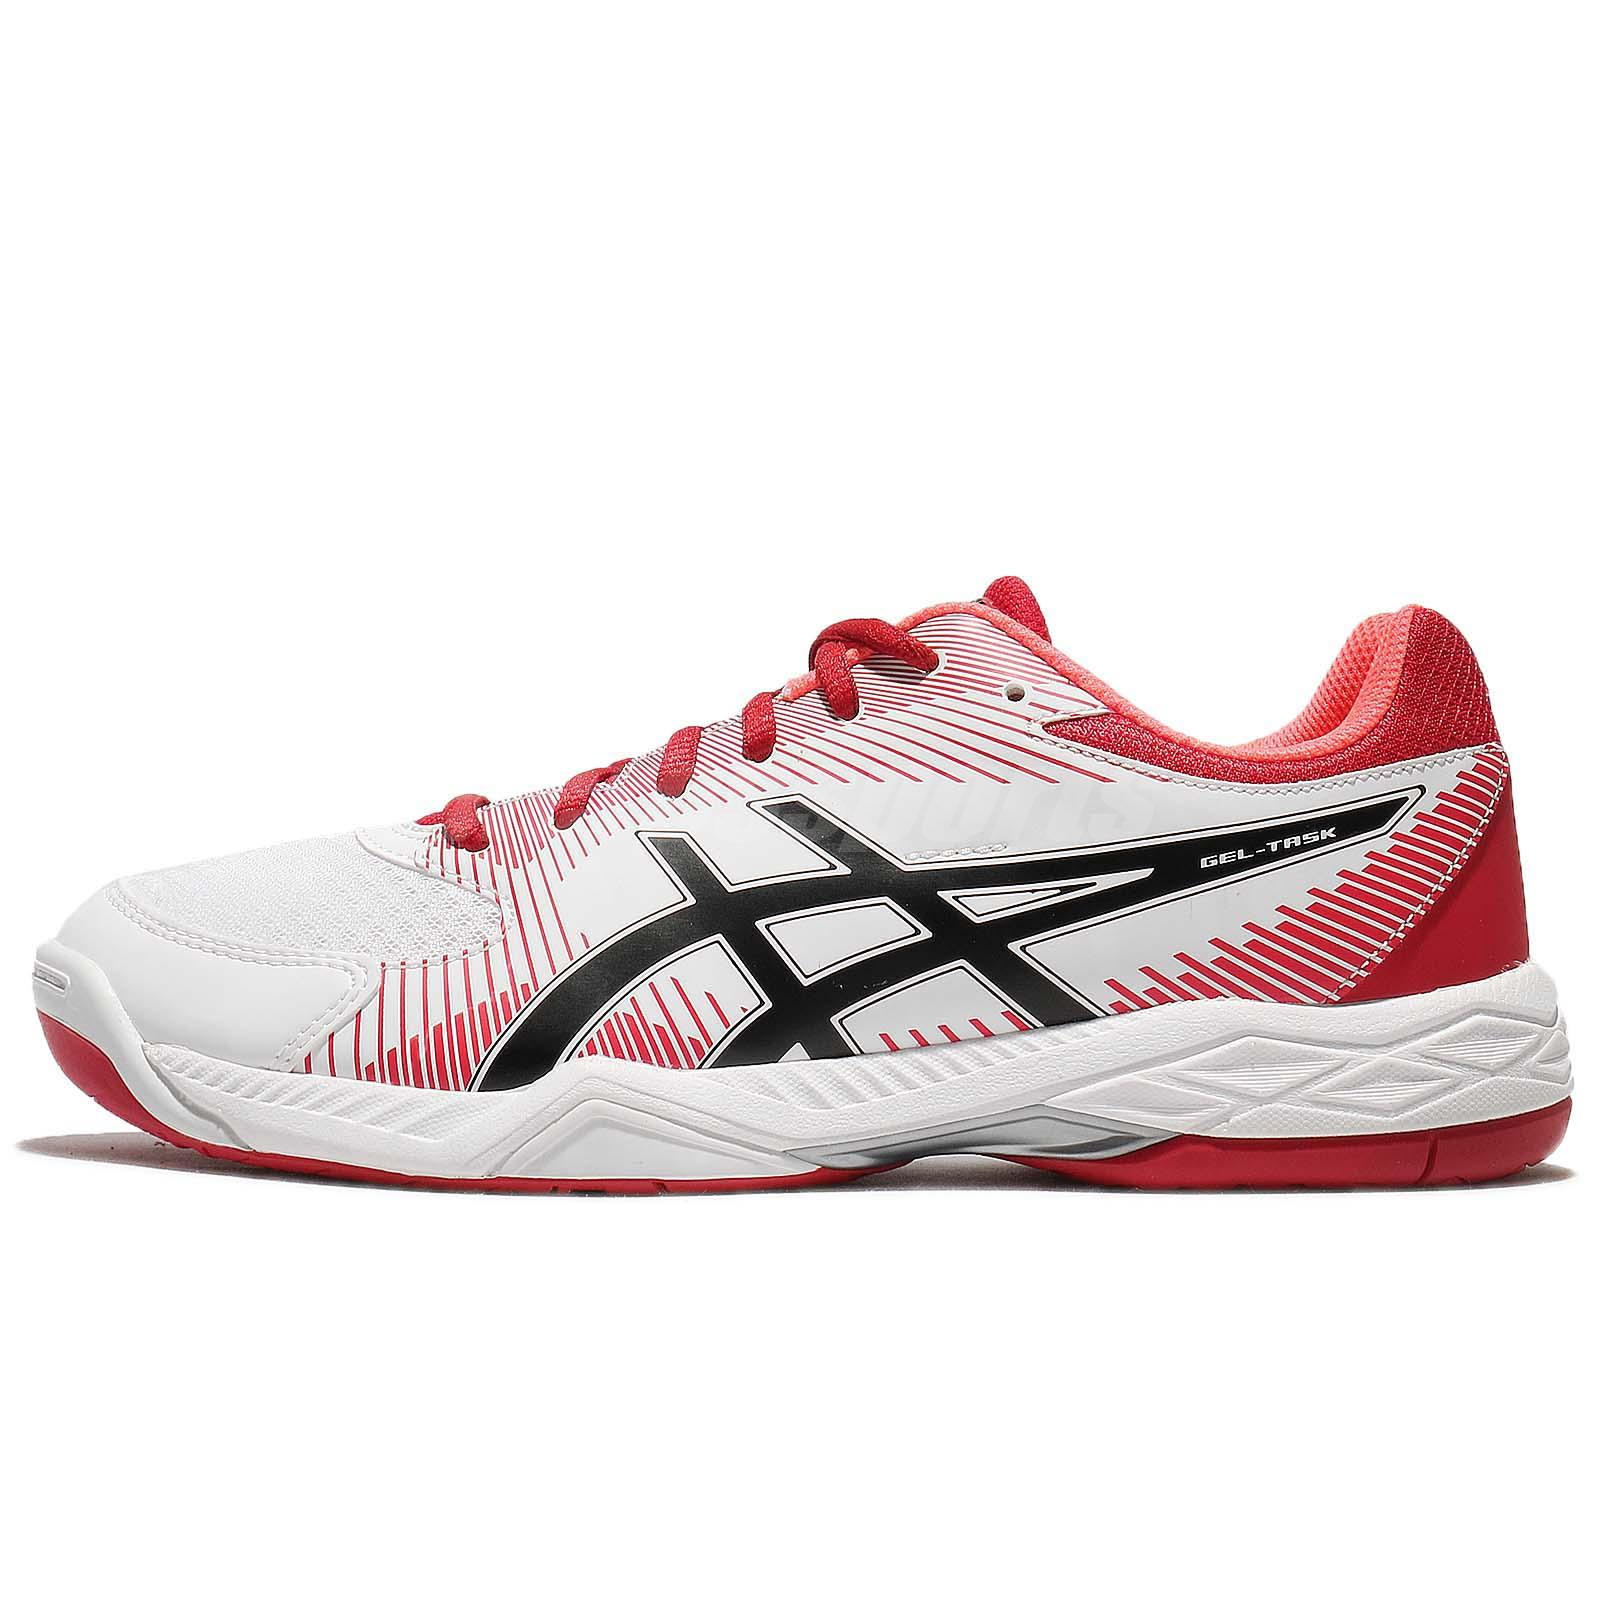 Details about Asics Gel-Task White Red Black Men Badminton Volleyball Shoes  Sneaker B704Y-0123